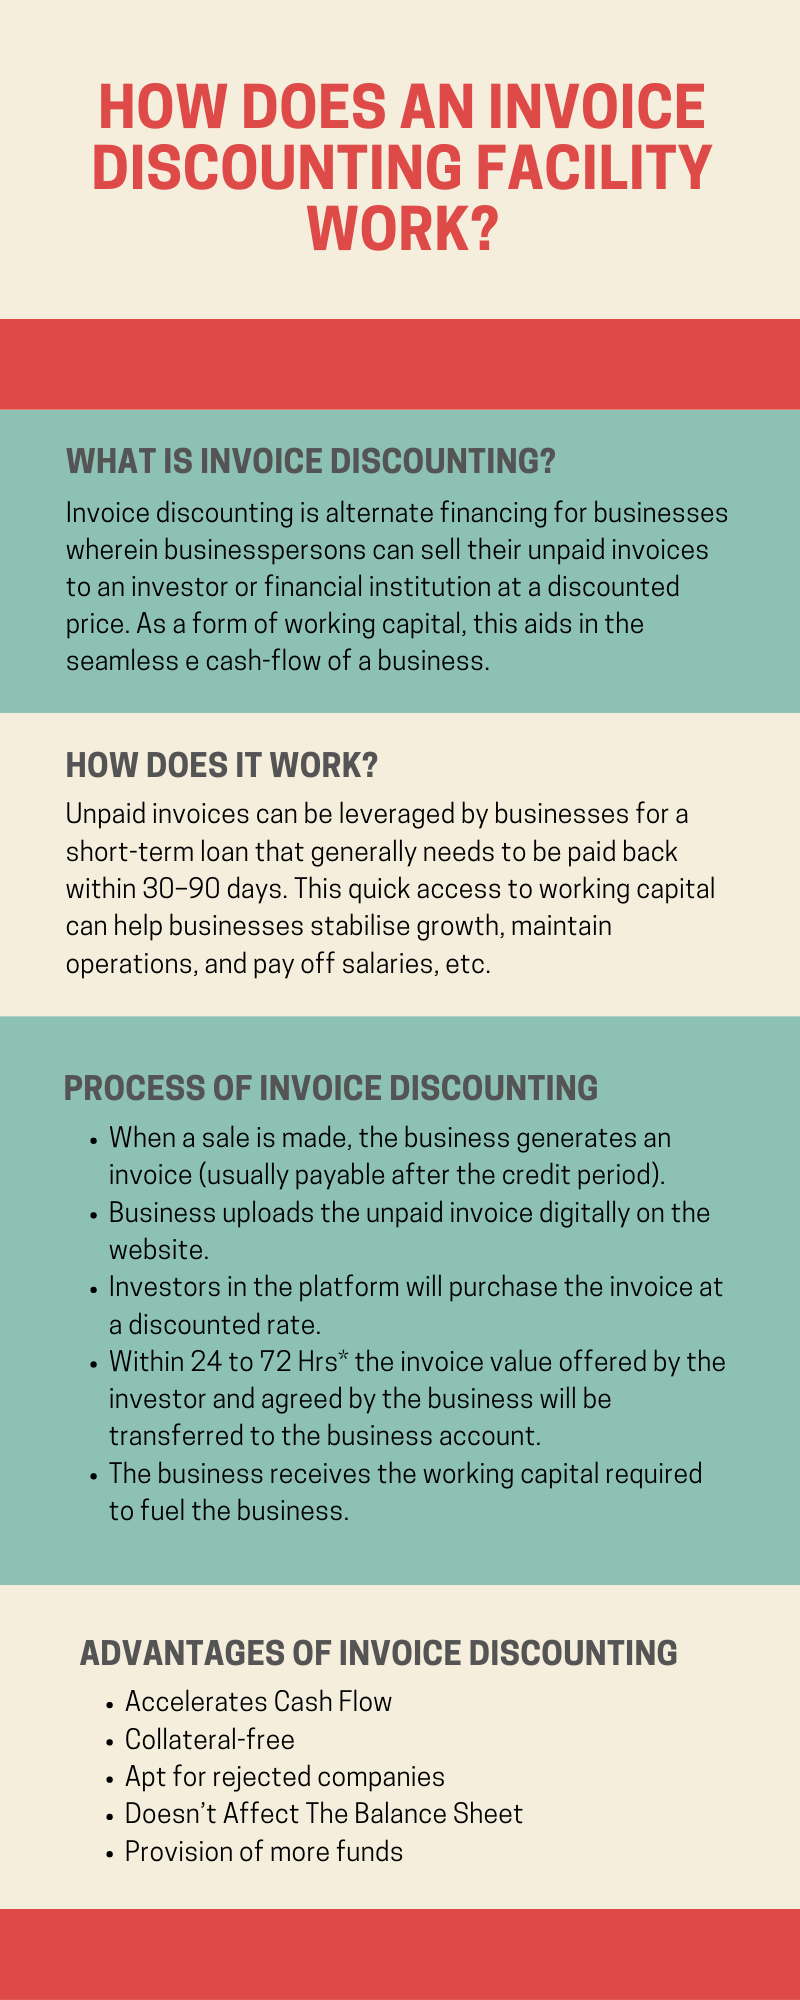 How Does An Invoice Discounting Facility Work #infographic